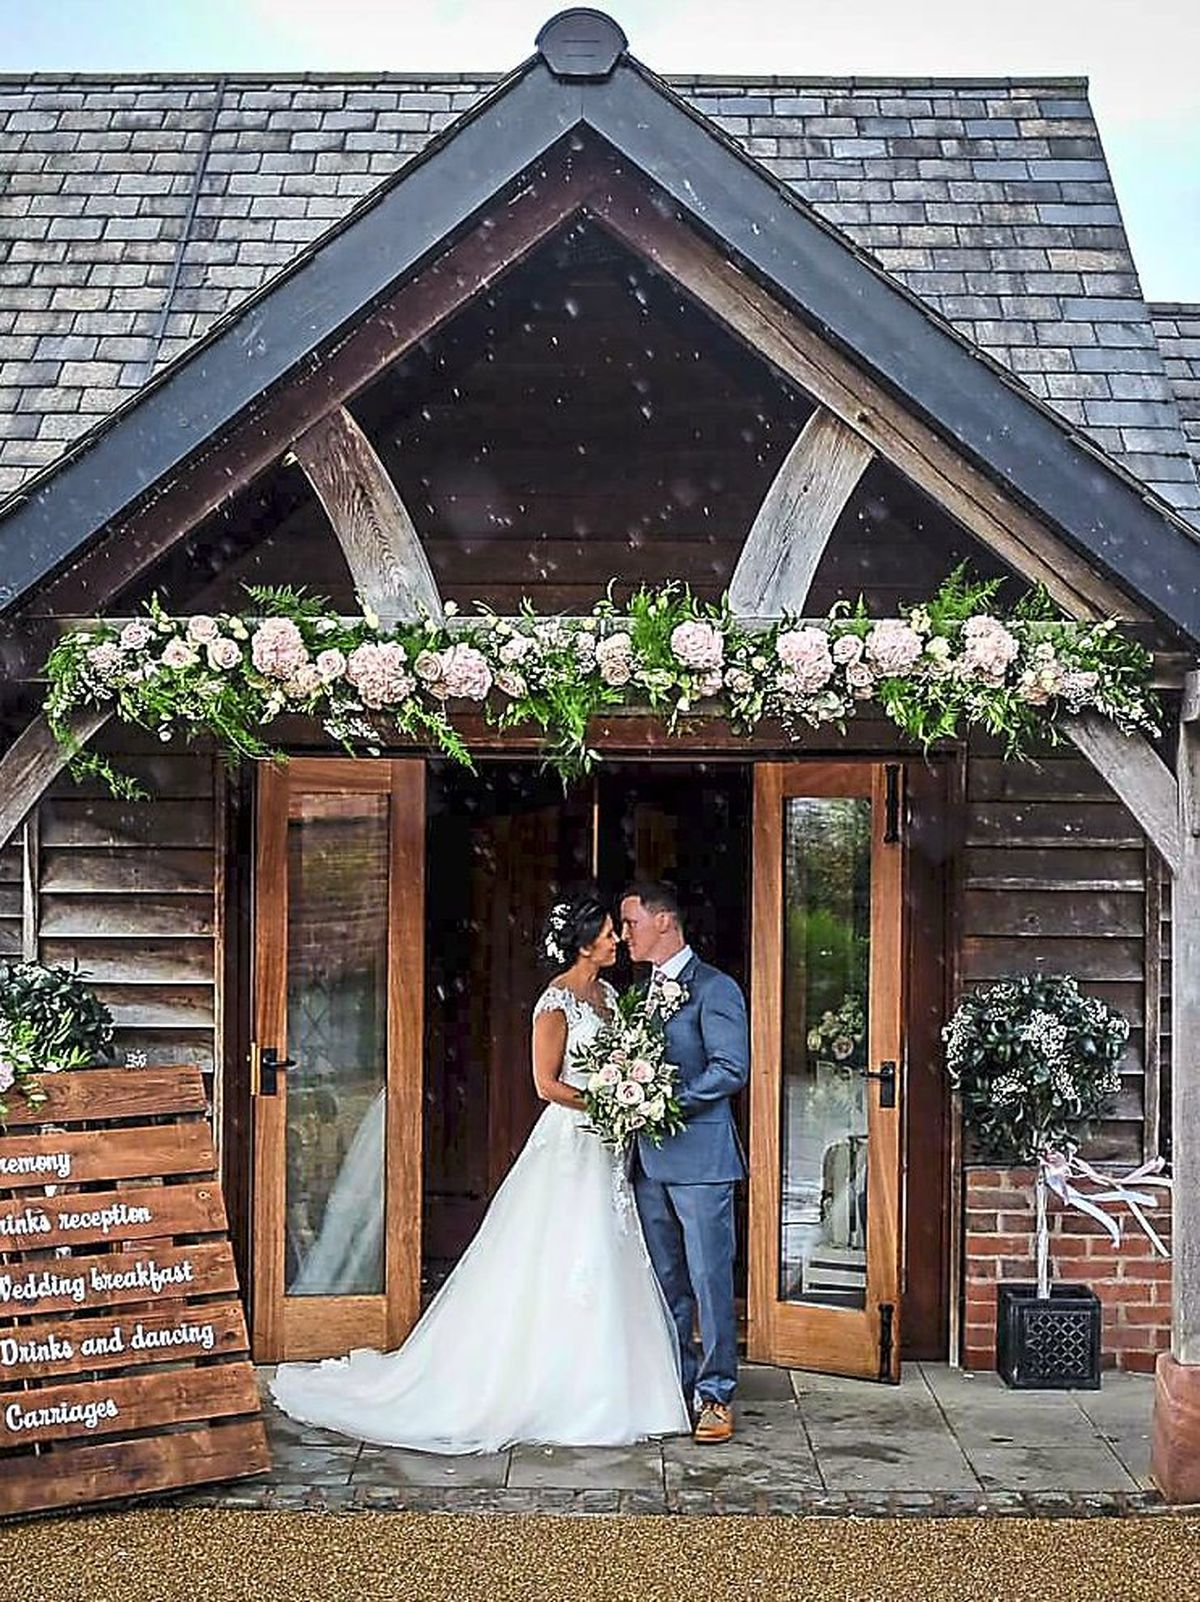 Country Dream Weddings and Events West Midlands have said they are cautiously planning future events